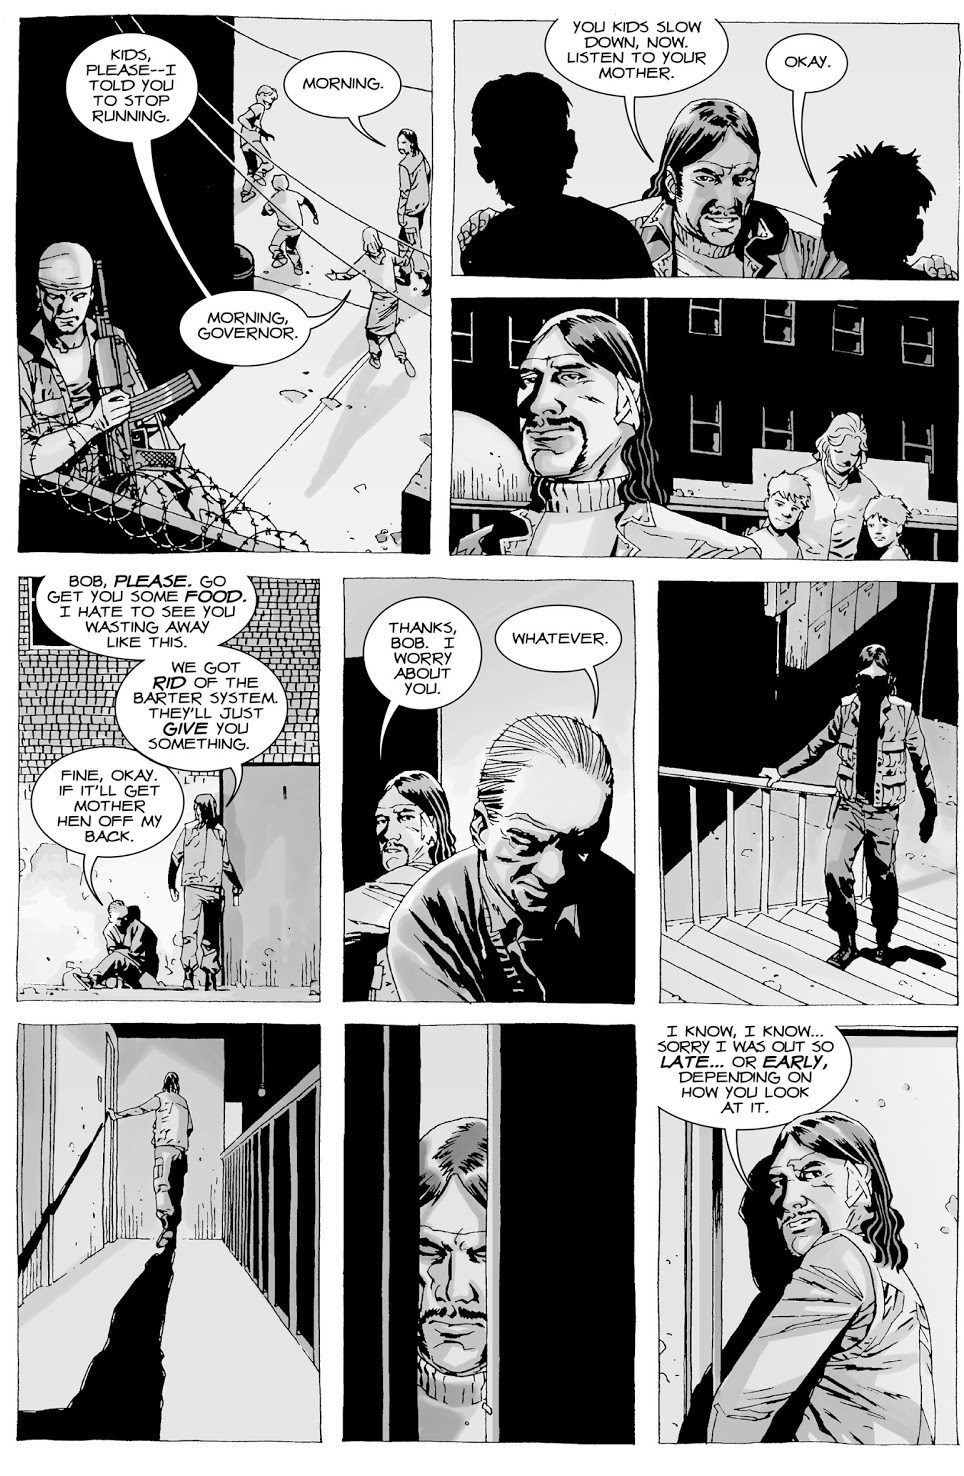 The Governor Keeps Penny Blake As A Pet (The Walking Dead)